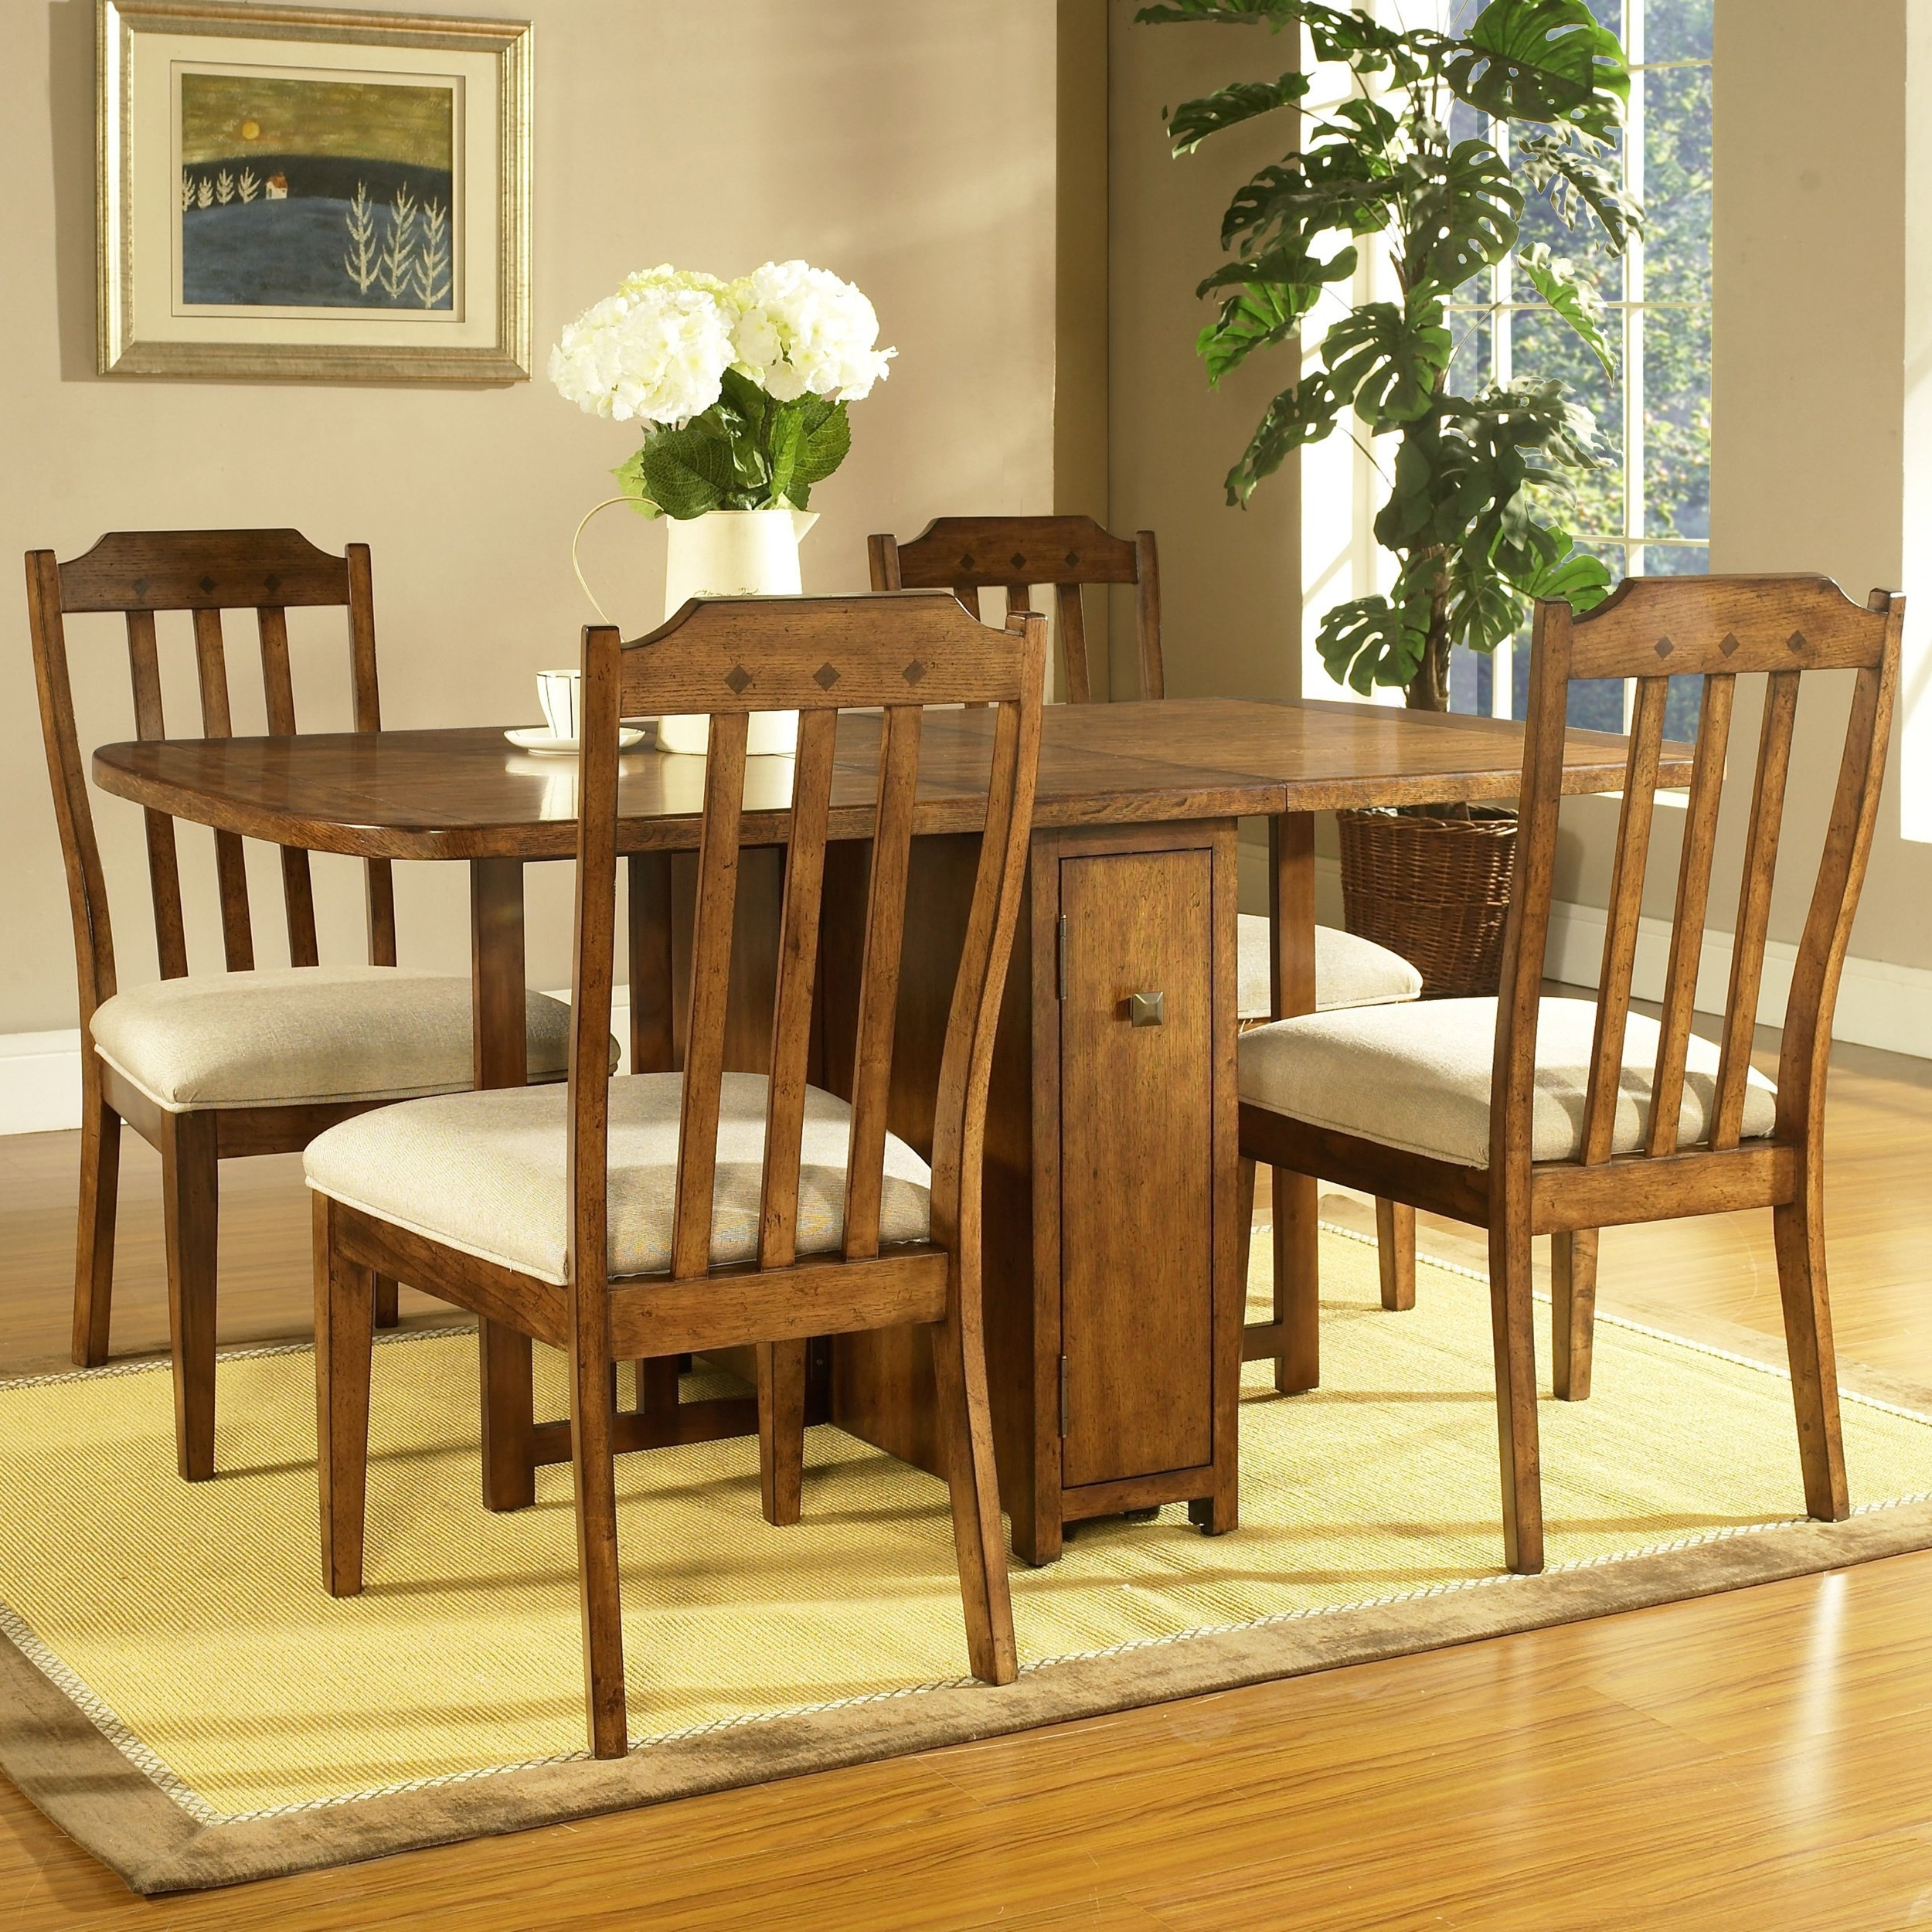 Craftsman 7 Piece Rectangular Extension Dining Sets With Arm & Uph Side Chairs Pertaining To Most Up To Date Shop Somerton Dwelling Craftsman 5 Piece Gate Leg Dining Set – Free (View 4 of 25)